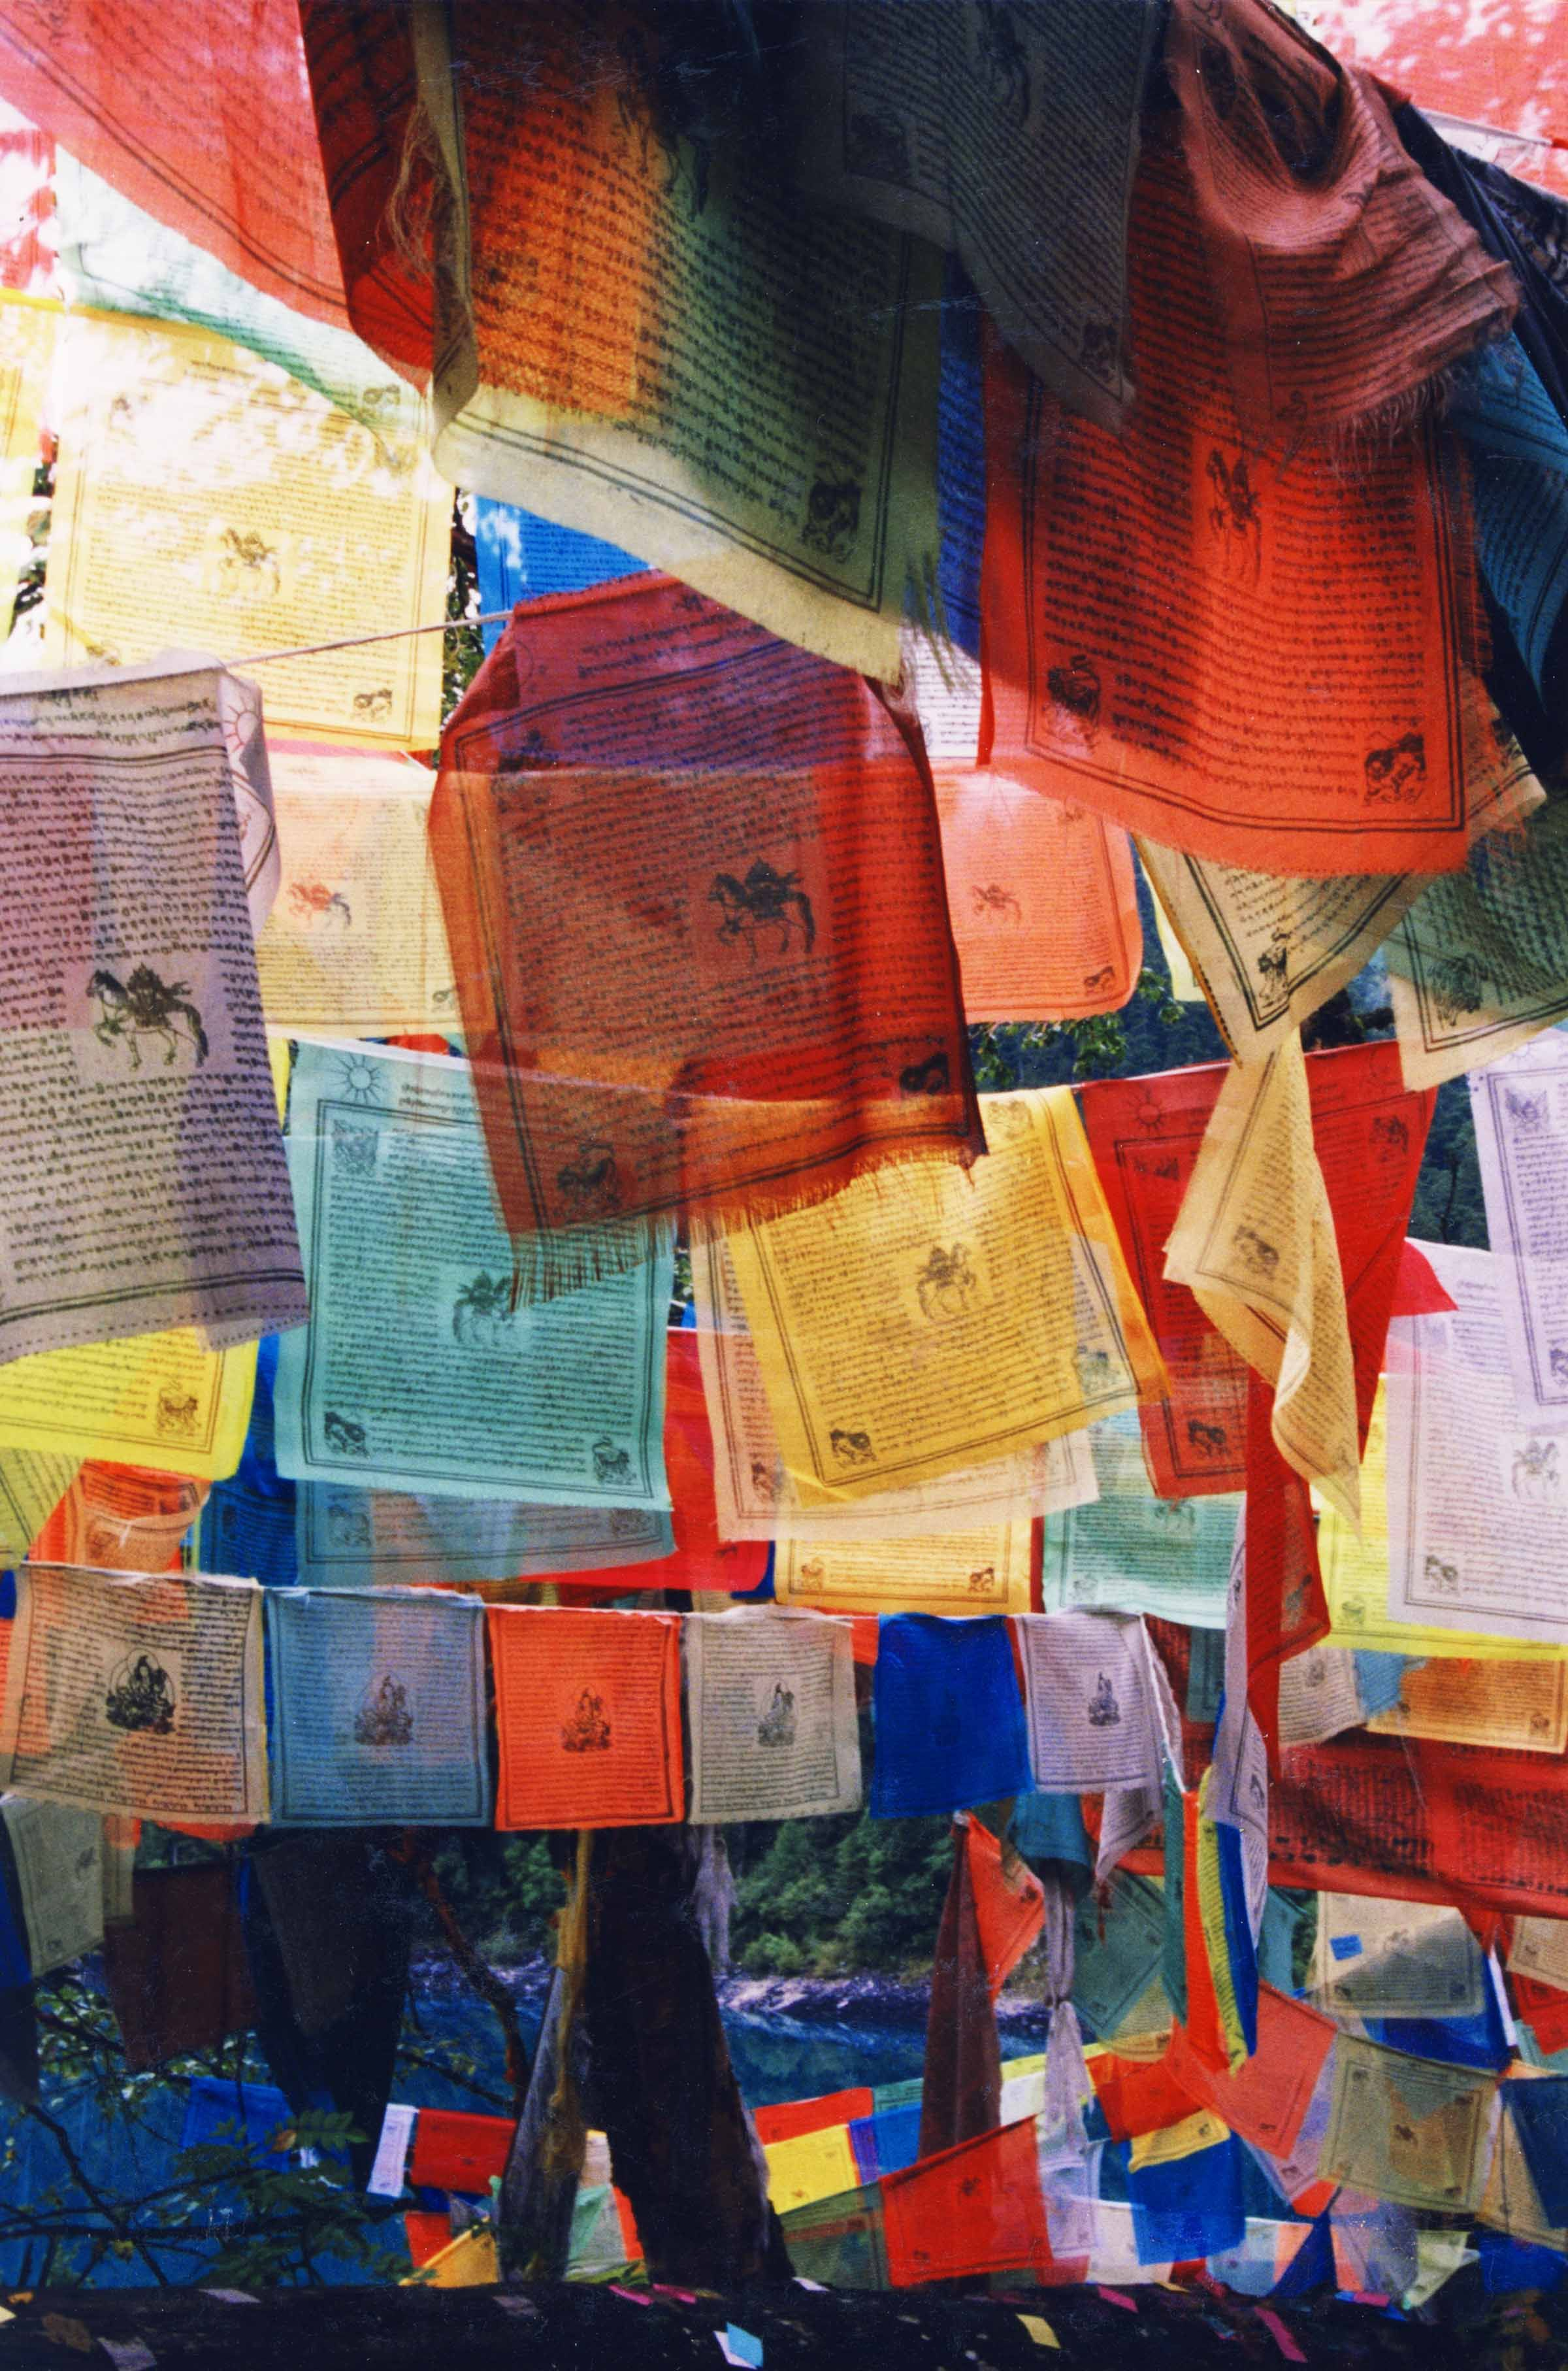 Tibetan Prayer flags are the newest addition to my apartment.